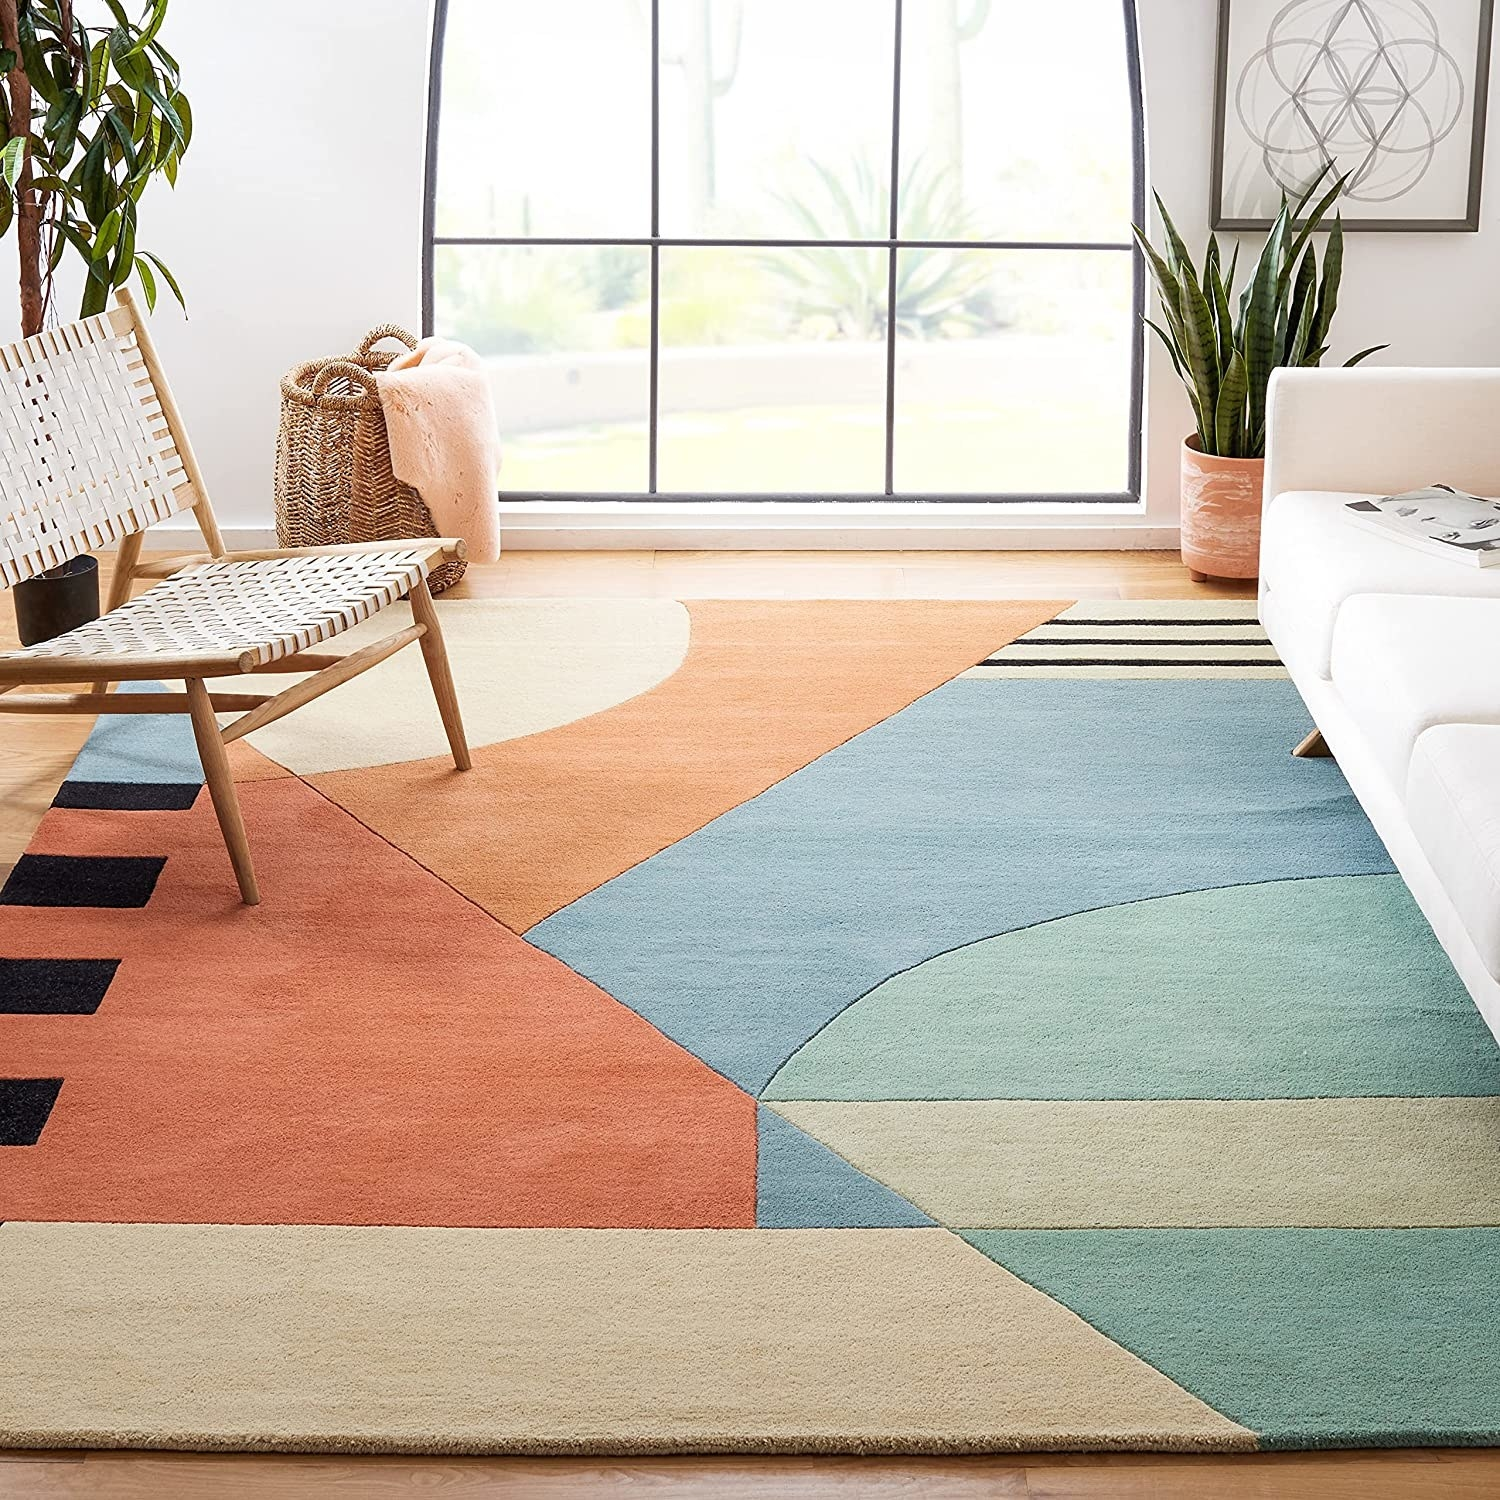 geometric rug in bright colors